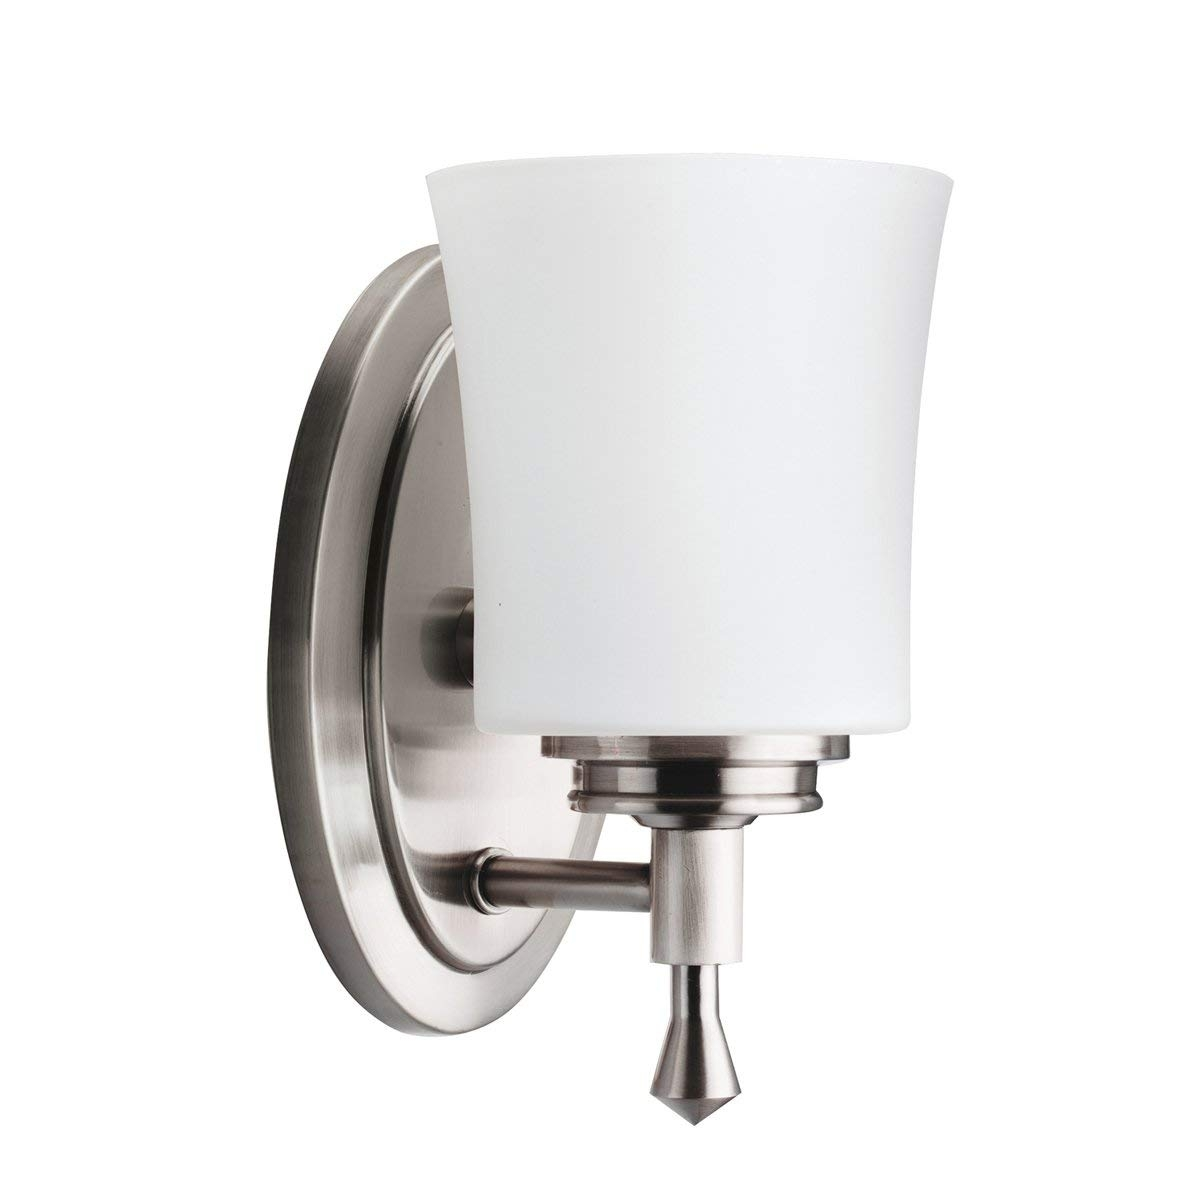 Kichler Wharton Wall Sconce Light Brushed Nickel Vanity Lighting regarding Outdoor Lanterns At Bunnings (Image 10 of 20)